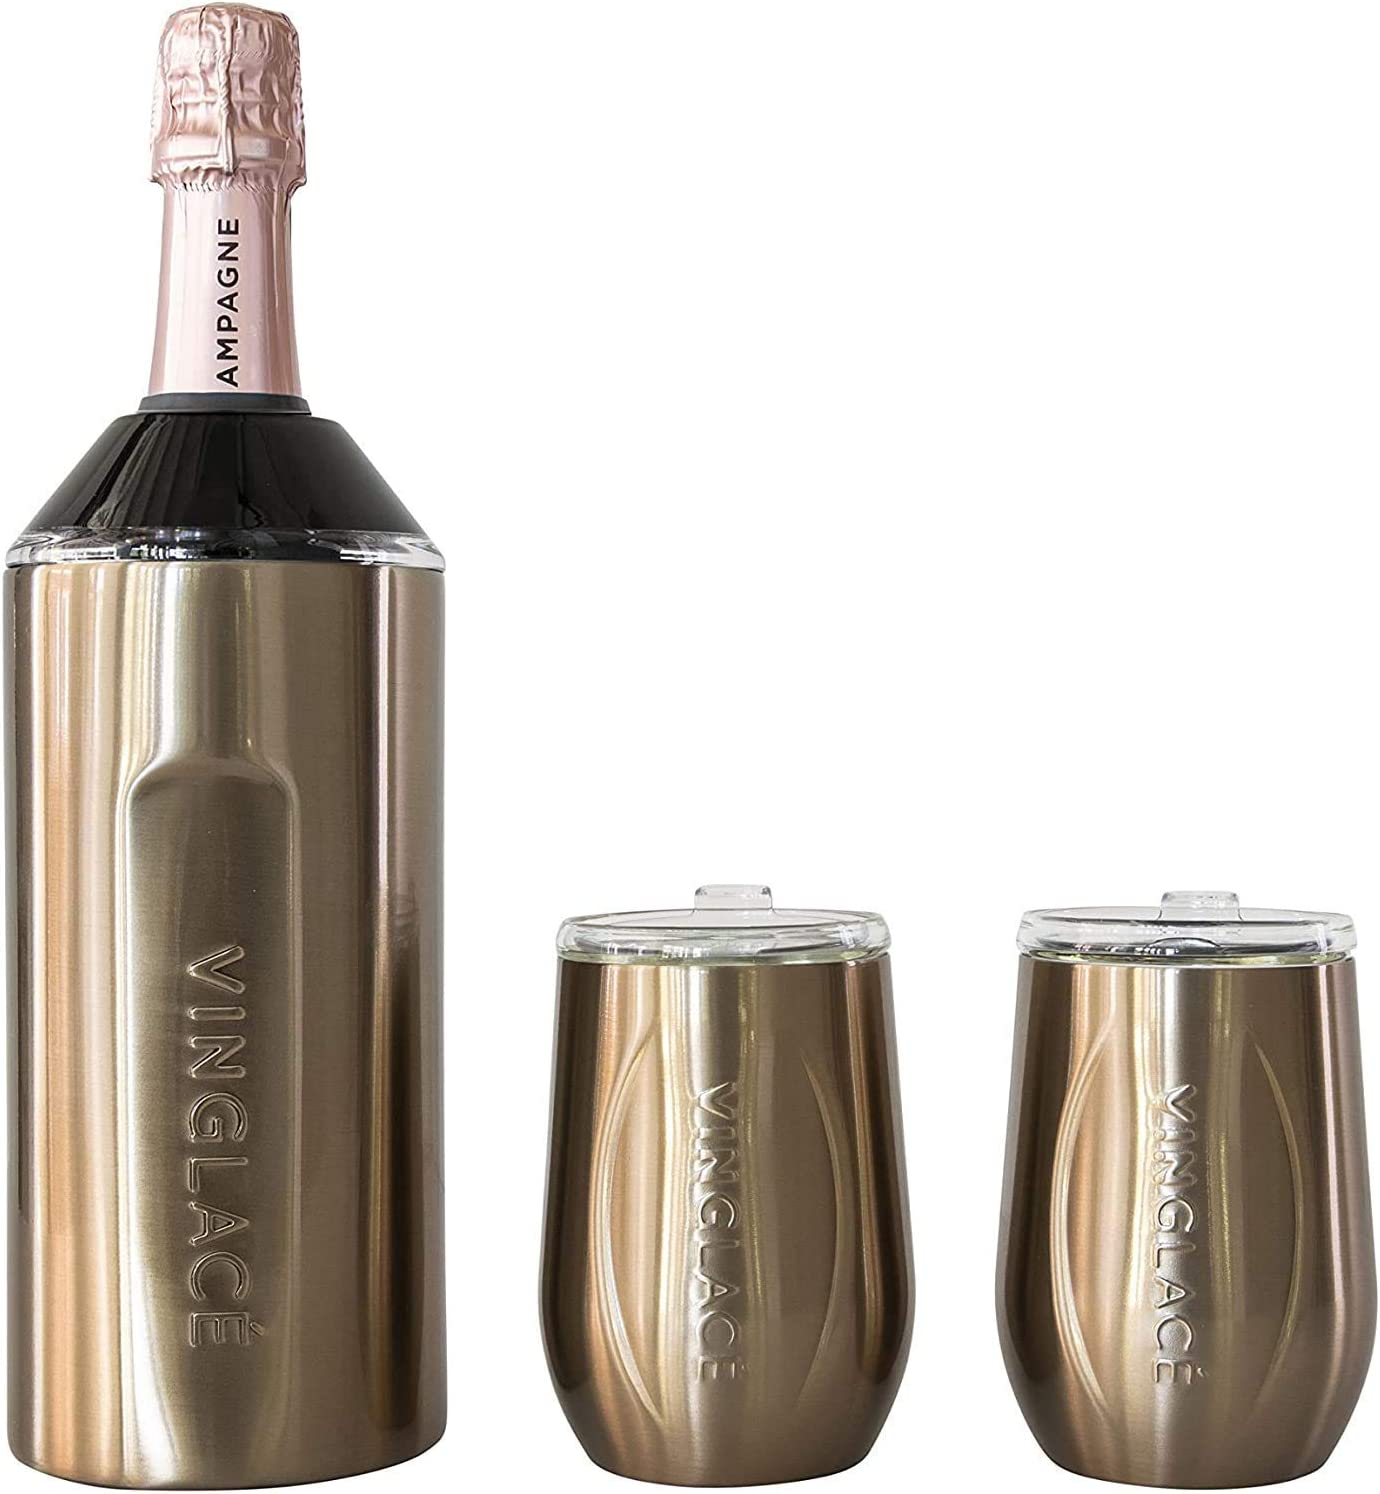 Vinglacé Gift Set - Bottle Insulator Chiller with 2 Stemless Wine Glasses - Great Gift Ideas for Wine and Champagne Lovers (Copper)